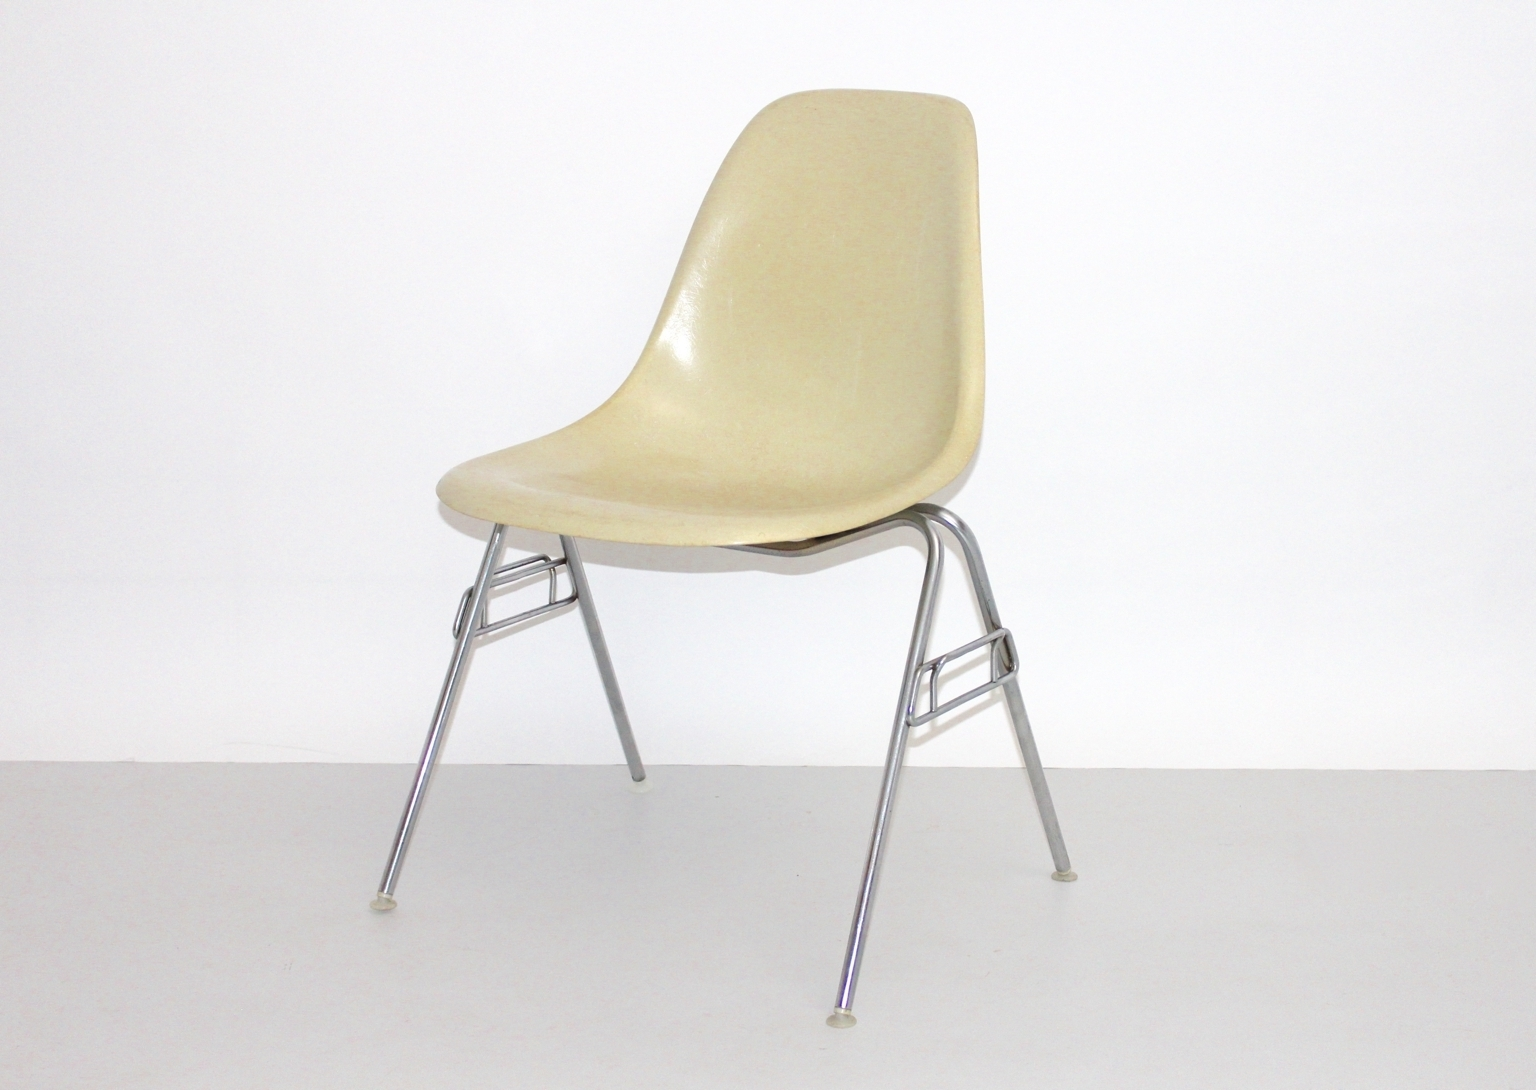 Vintage Model Dss-N Fiberglass Chairray & Charles Eames For within 2018 Eames Chaises